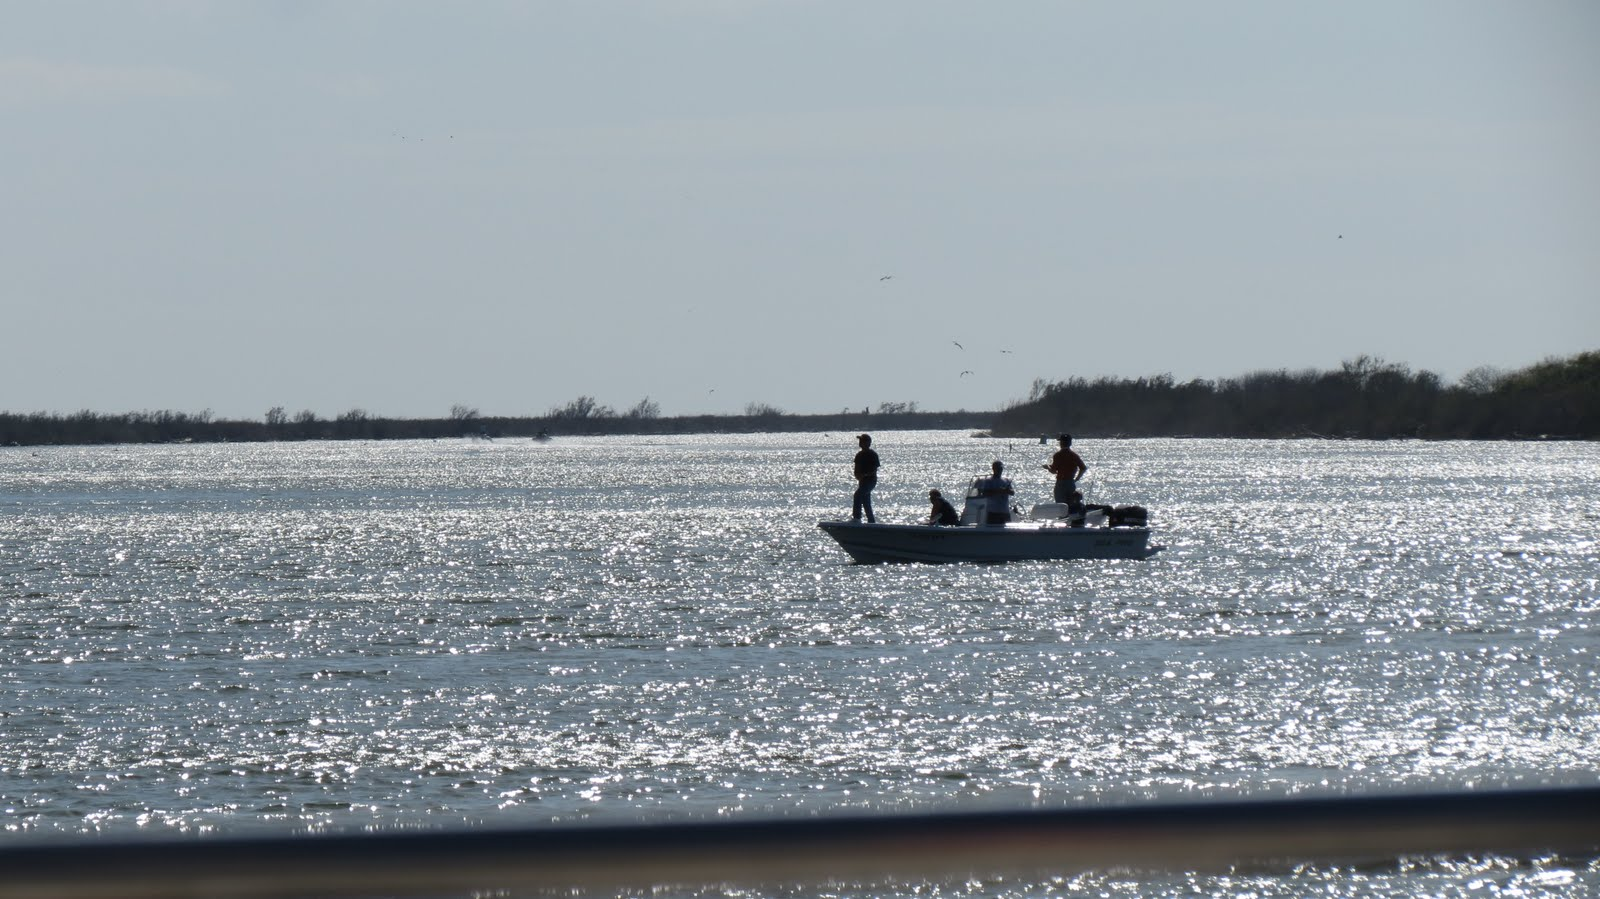 matagorda men Chris ruckman, spencer hall, and starett burk went missing on friday while duck hunting near matagorda bay&nbsp the men launched their 17-foot green.